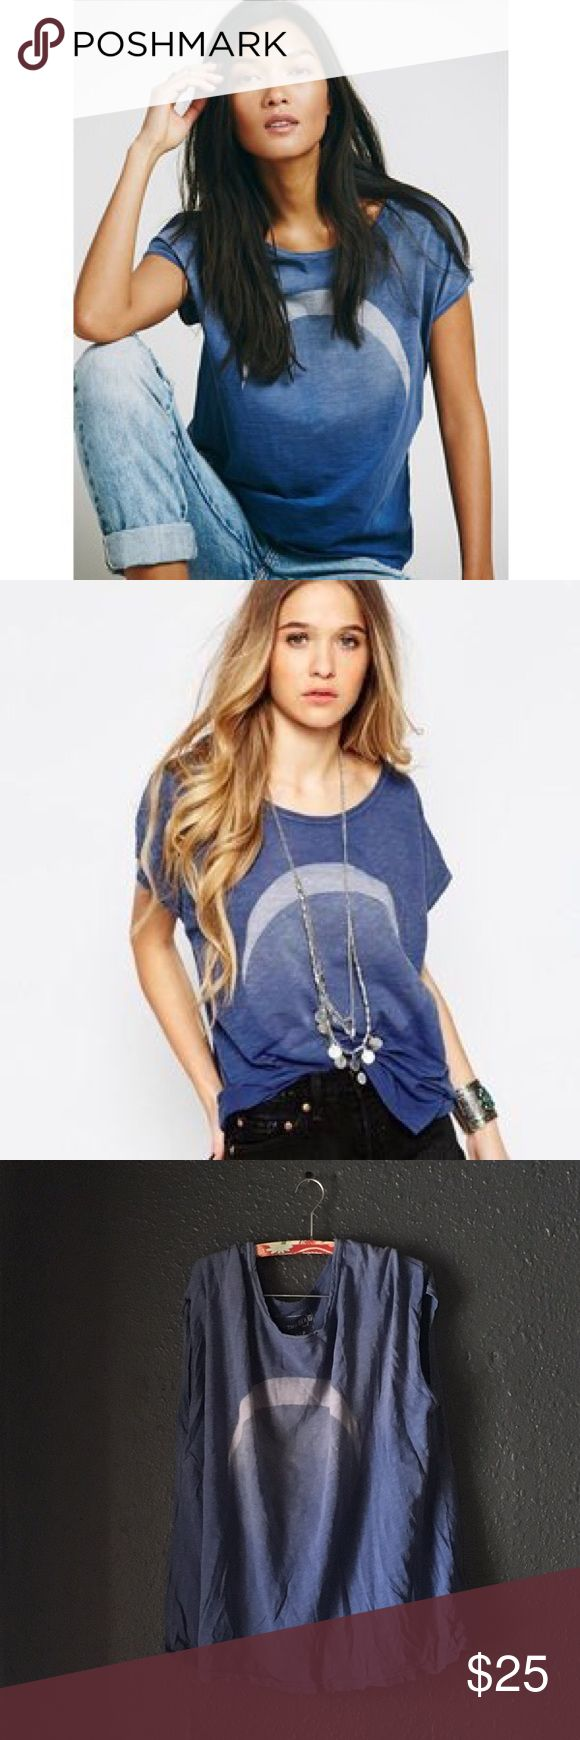 🌙Free People Thunder Moon Tee Excellent condition,just wrinkle 😉 Free People Tops Tees - Short Sleeve